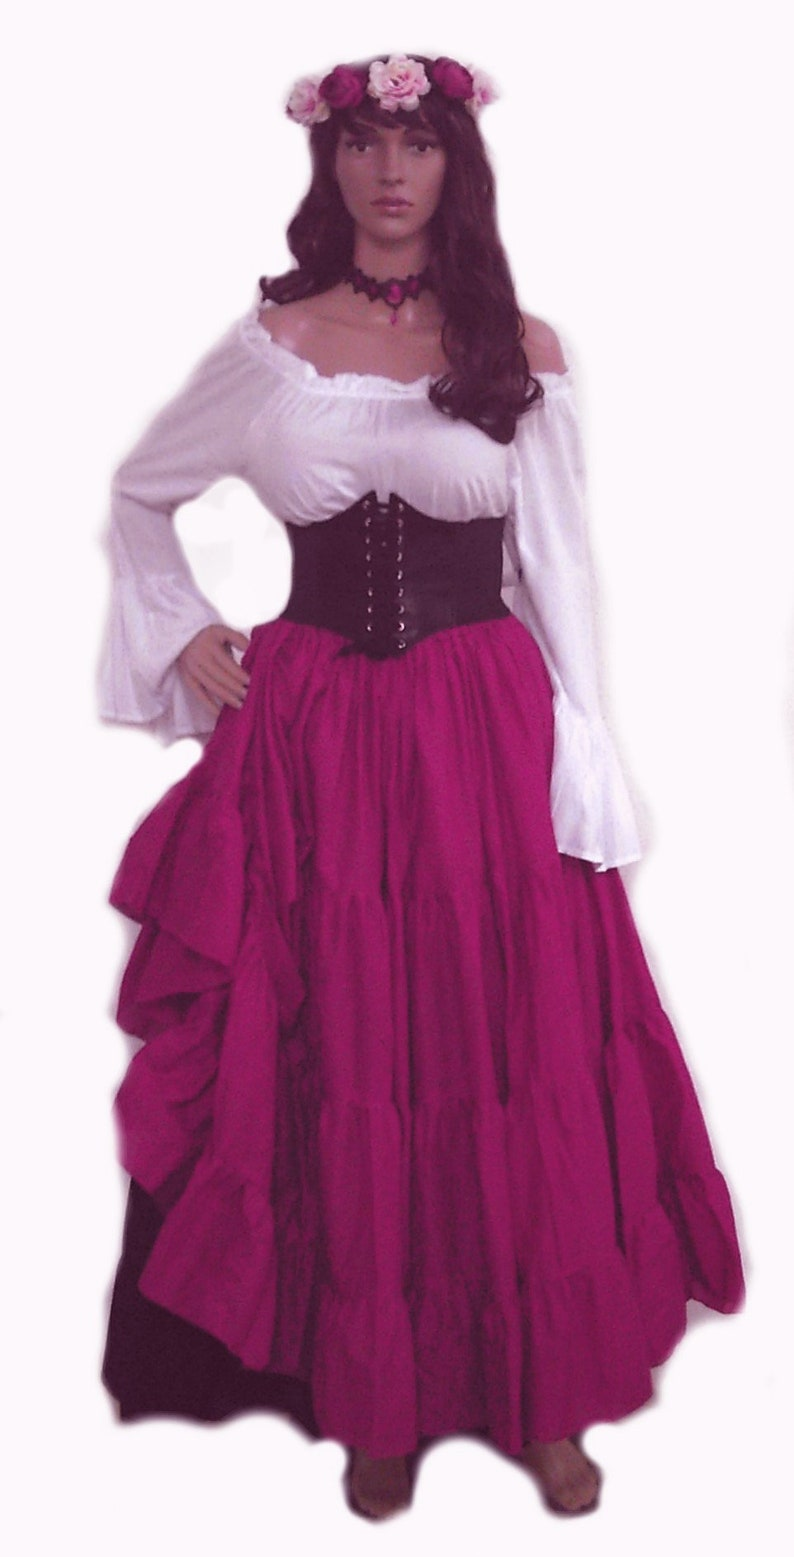 126197c1755 Renaissance Dress Pirate Gypsy Chemise Corset Outfit Waist